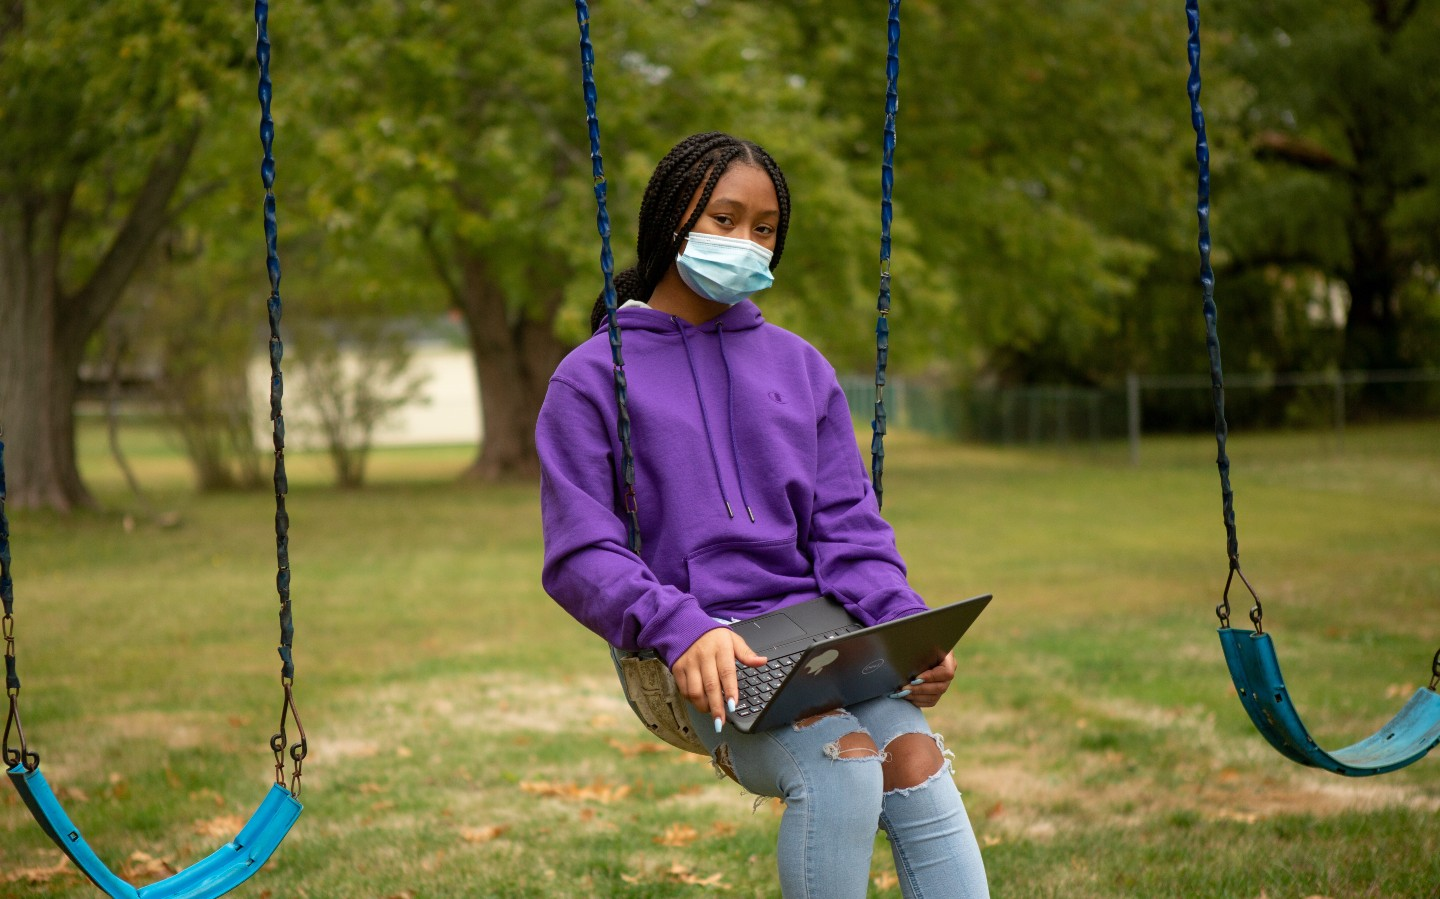 A remote learning student works on an assignment on the swing set at her home.